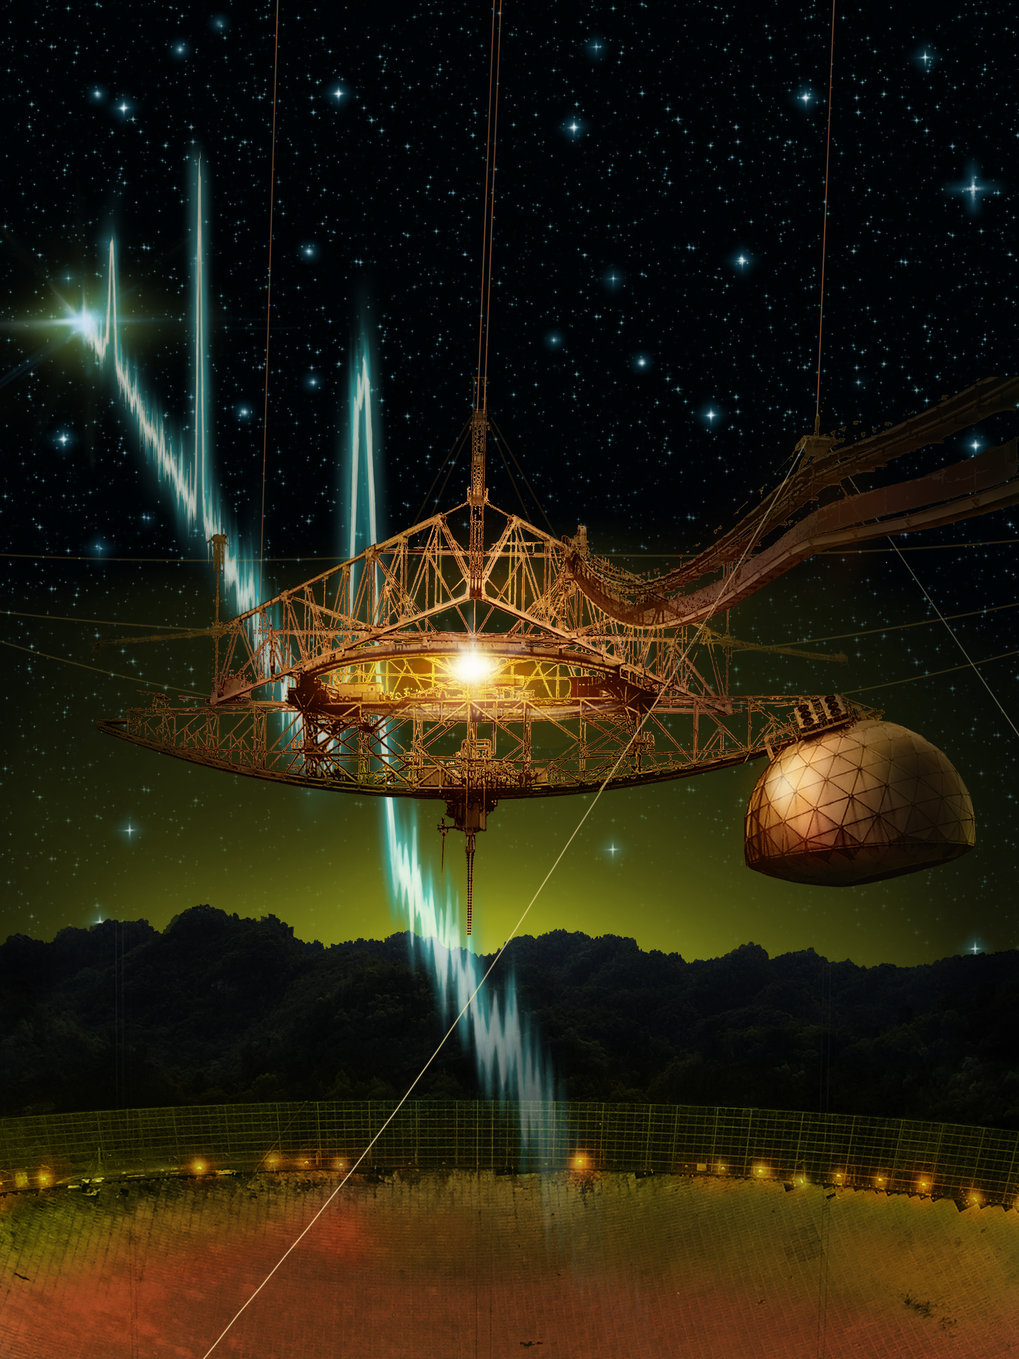 <p><em>The 305-m Arecibo telescope and its suspended support platform of radio receivers is shown amid a starry night.  From space, a sequence of millisecond-duration radio flashes are racing towards the dish, where they will be reflected and detected by the radio receivers.  Such radio signals are called fast radio bursts, and Arecibo is the first telescope to see repeat bursts from the same source.</em><strong>  </strong></p>